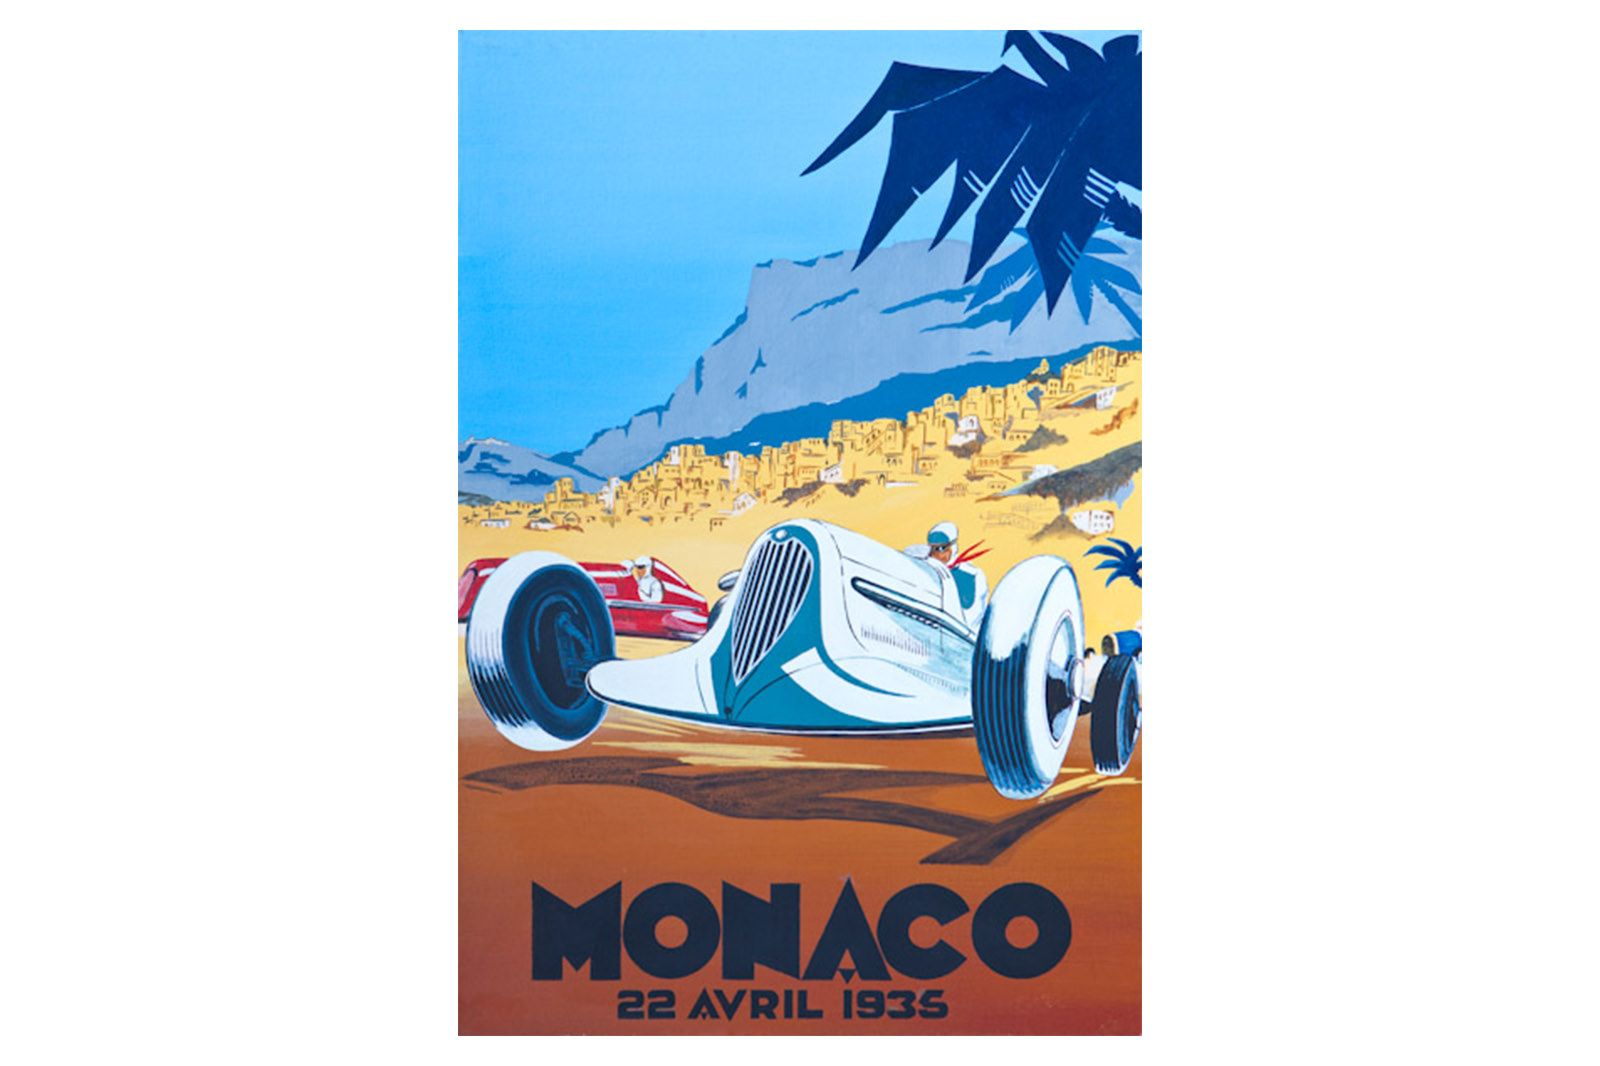 Quality Prints Framed - Monaco 22 Avril 1935